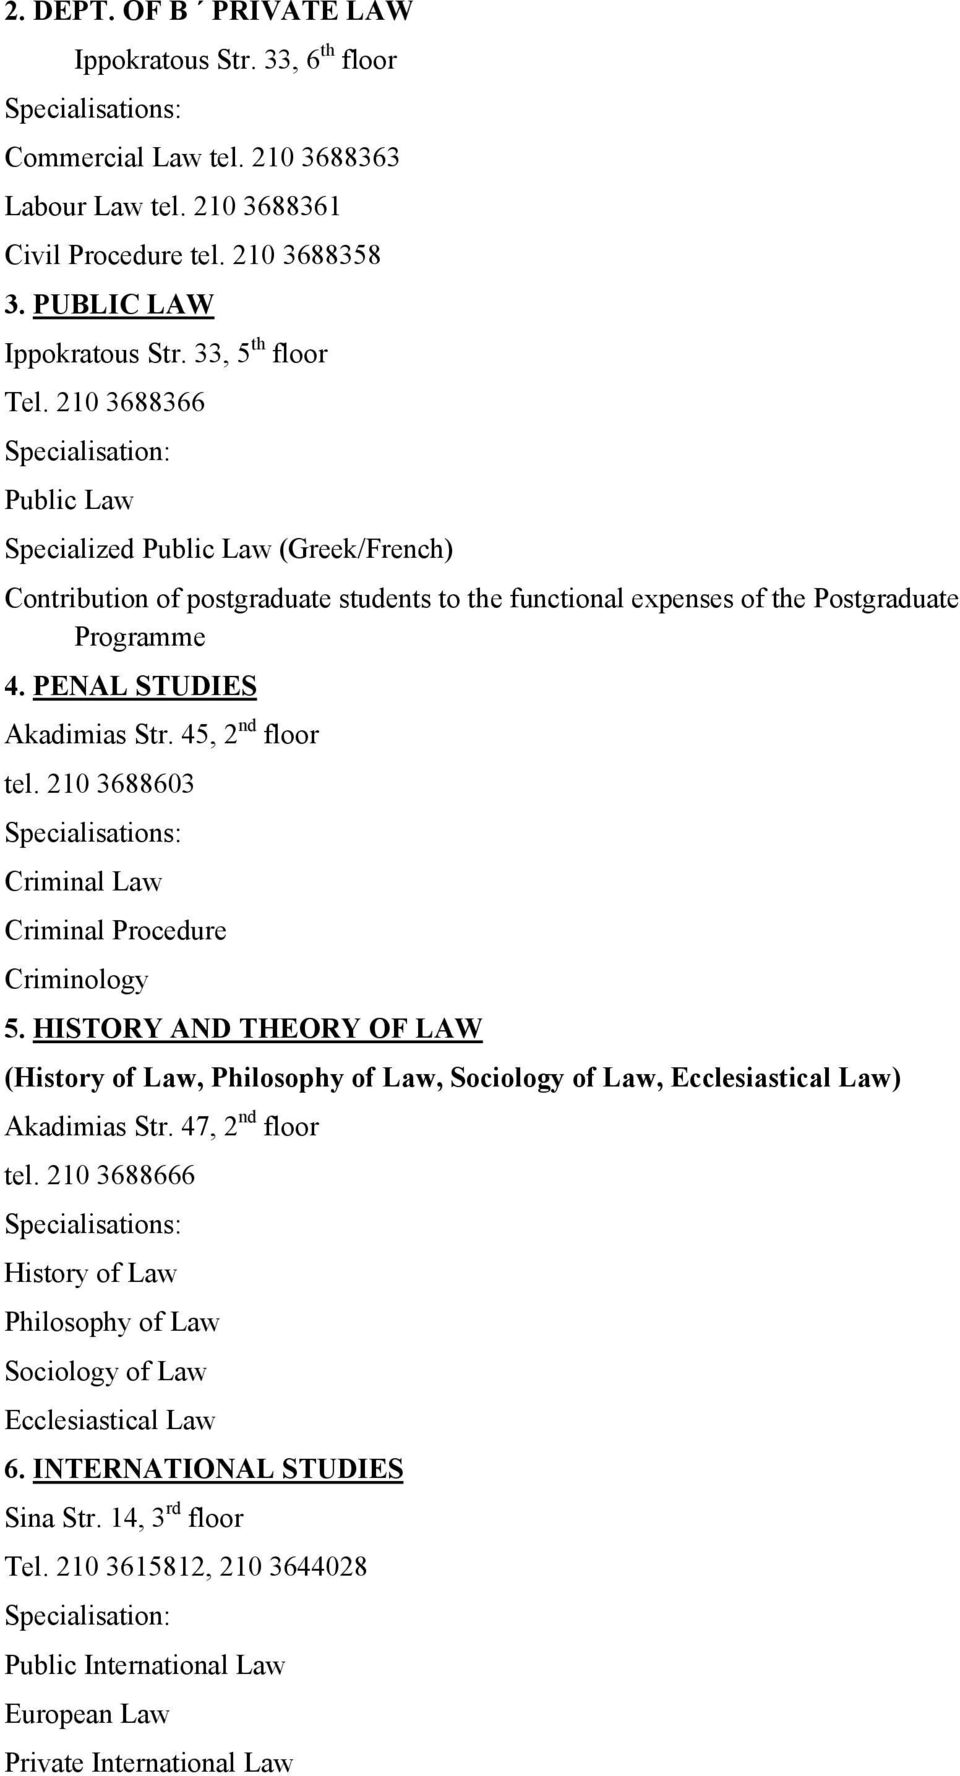 Basic theory of the origin of law 12